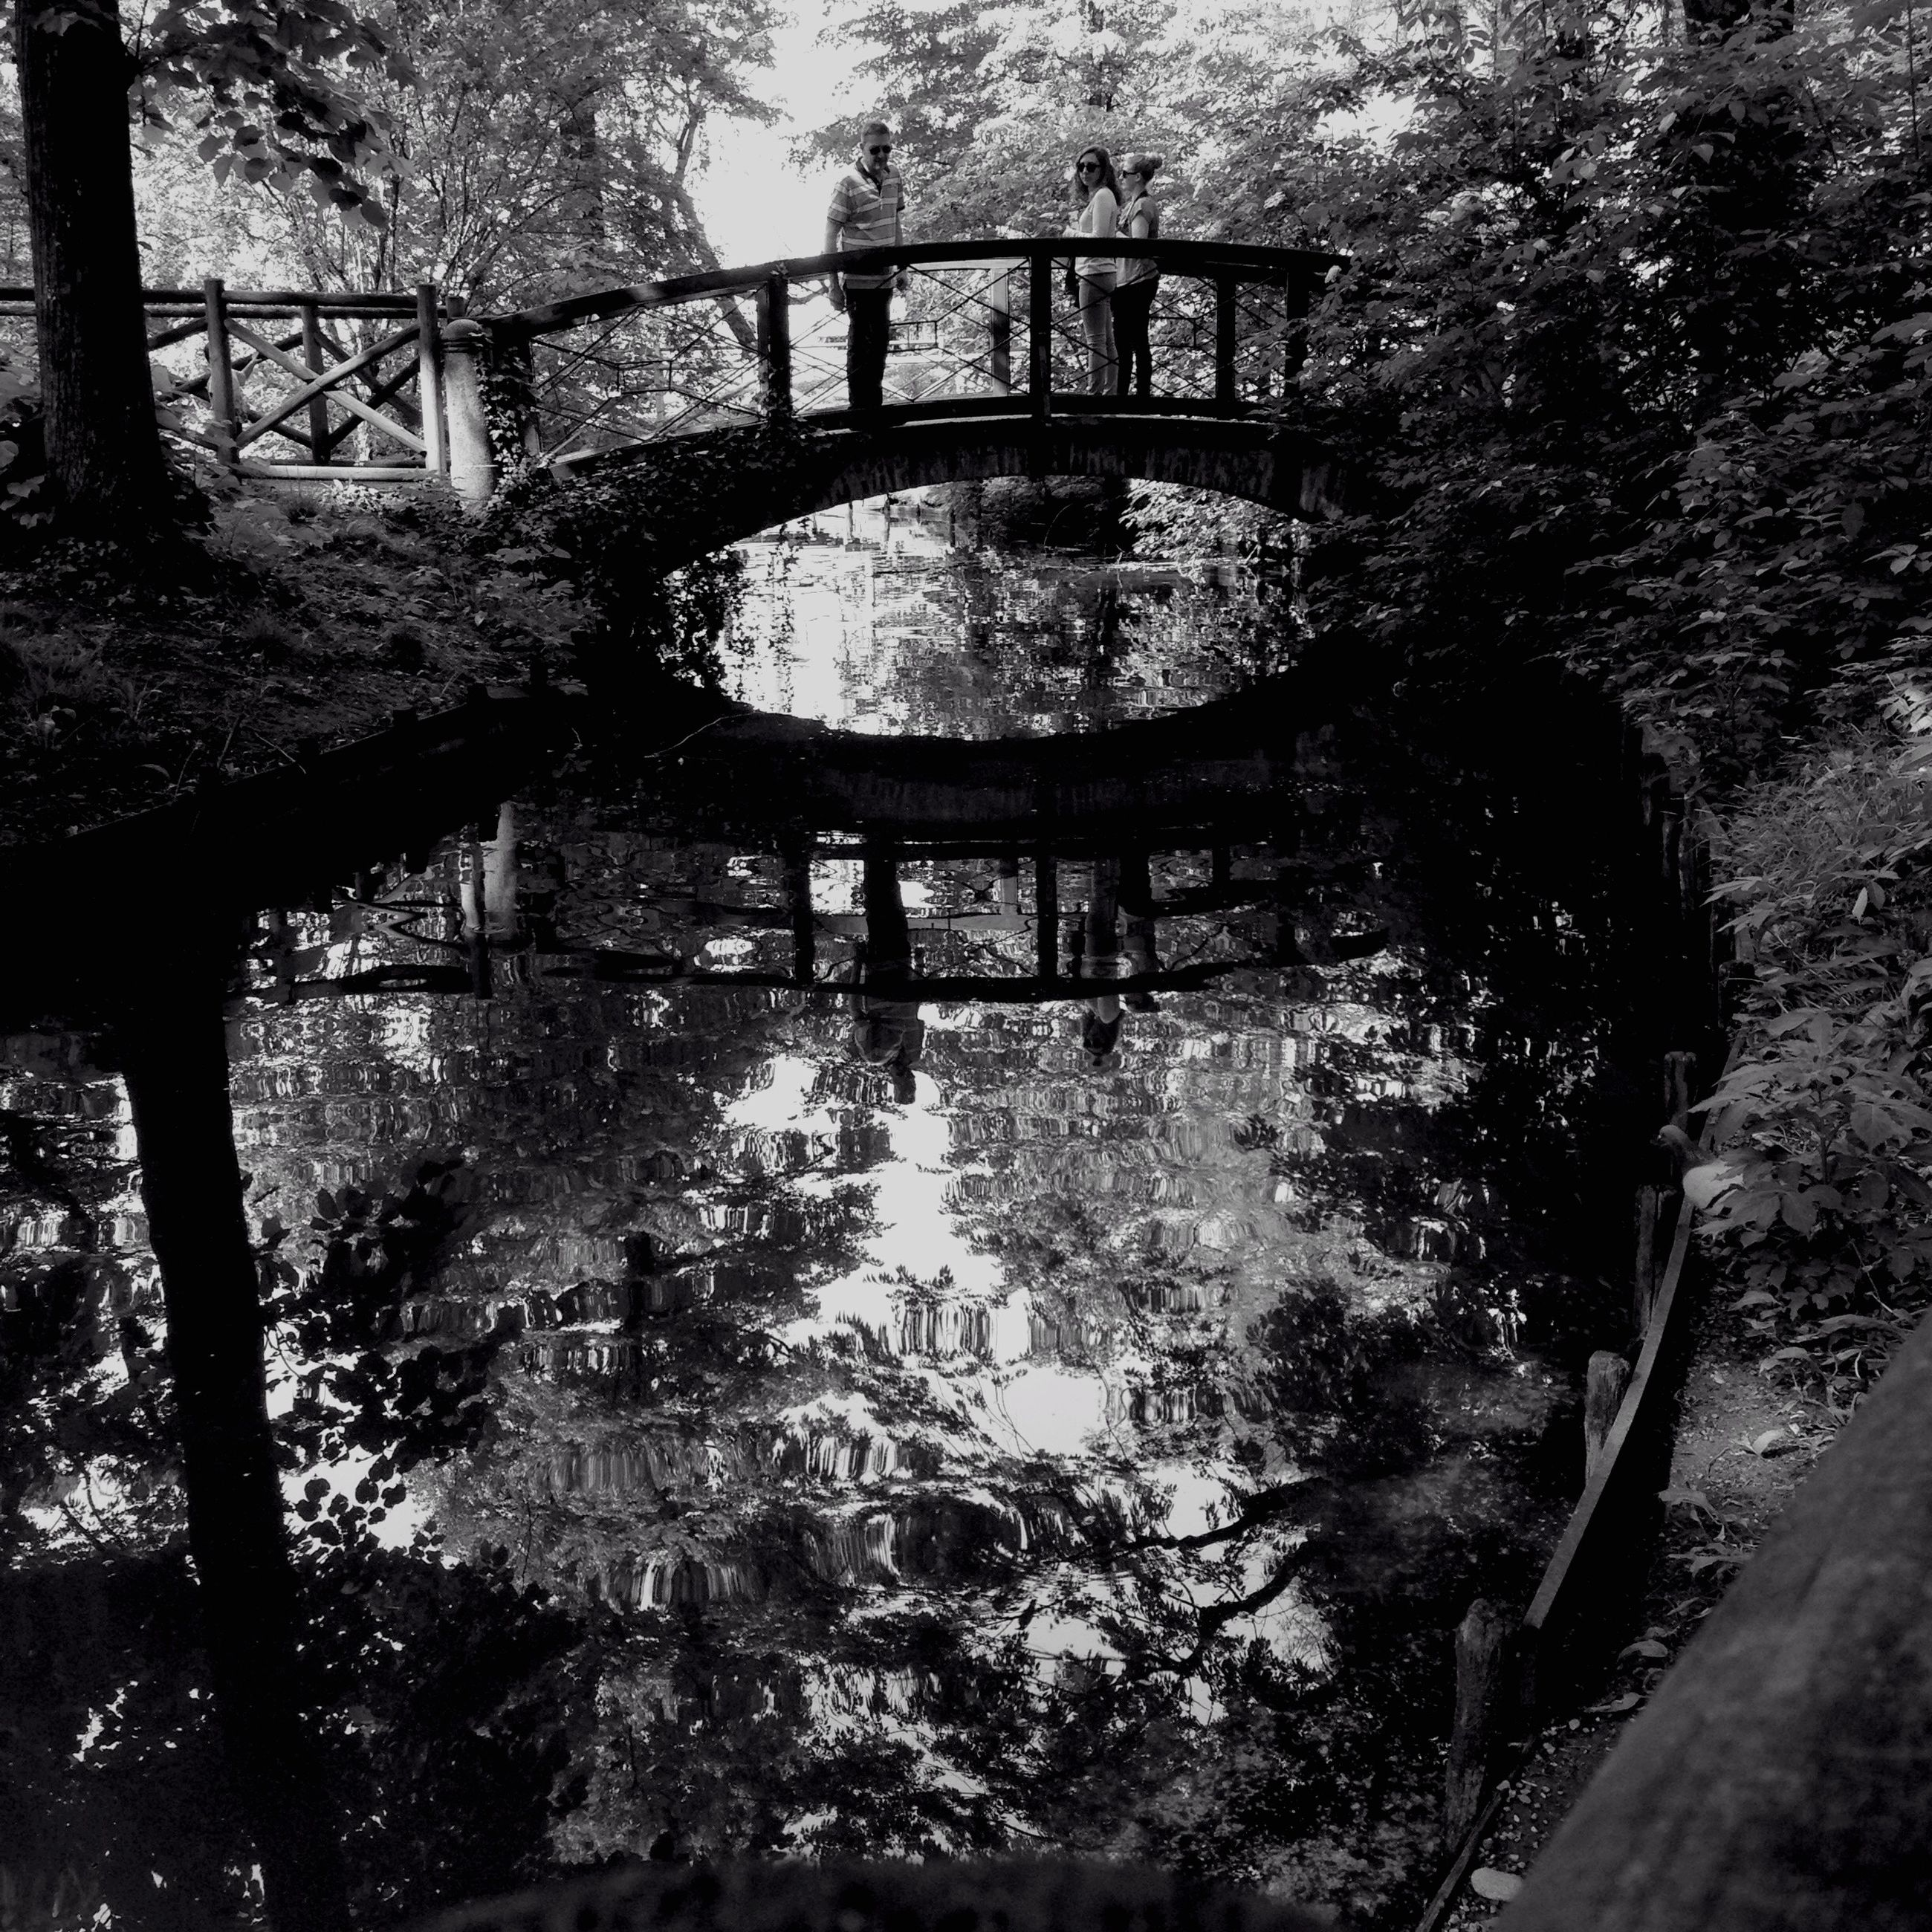 tree, water, bridge - man made structure, tranquility, reflection, branch, river, tree trunk, nature, connection, tranquil scene, forest, footbridge, growth, railing, park - man made space, beauty in nature, lake, sunlight, day